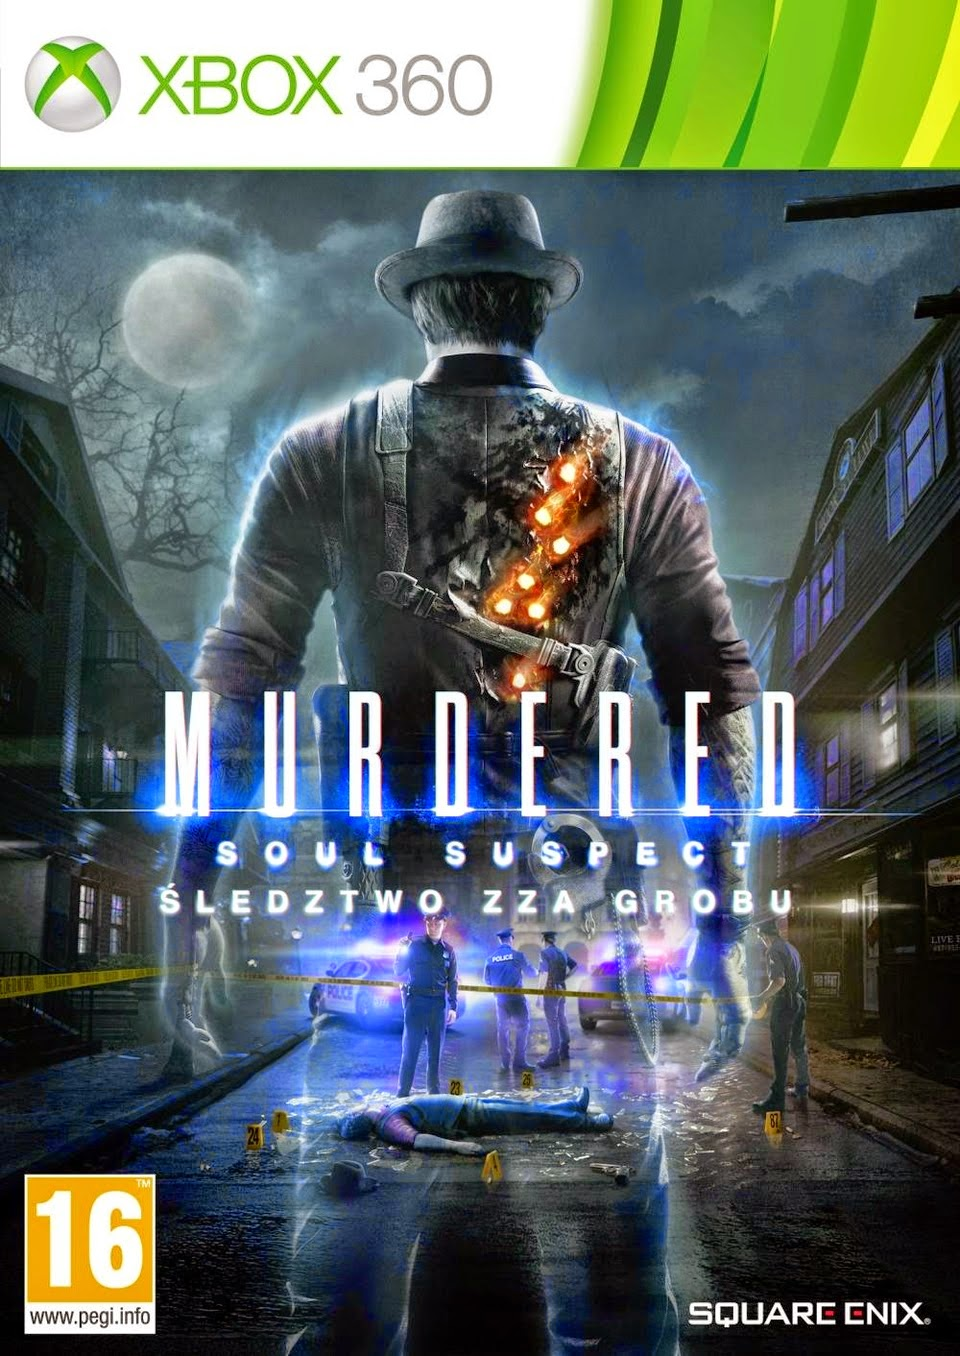 Murdered Soul Suspect XBOX360 free download full version